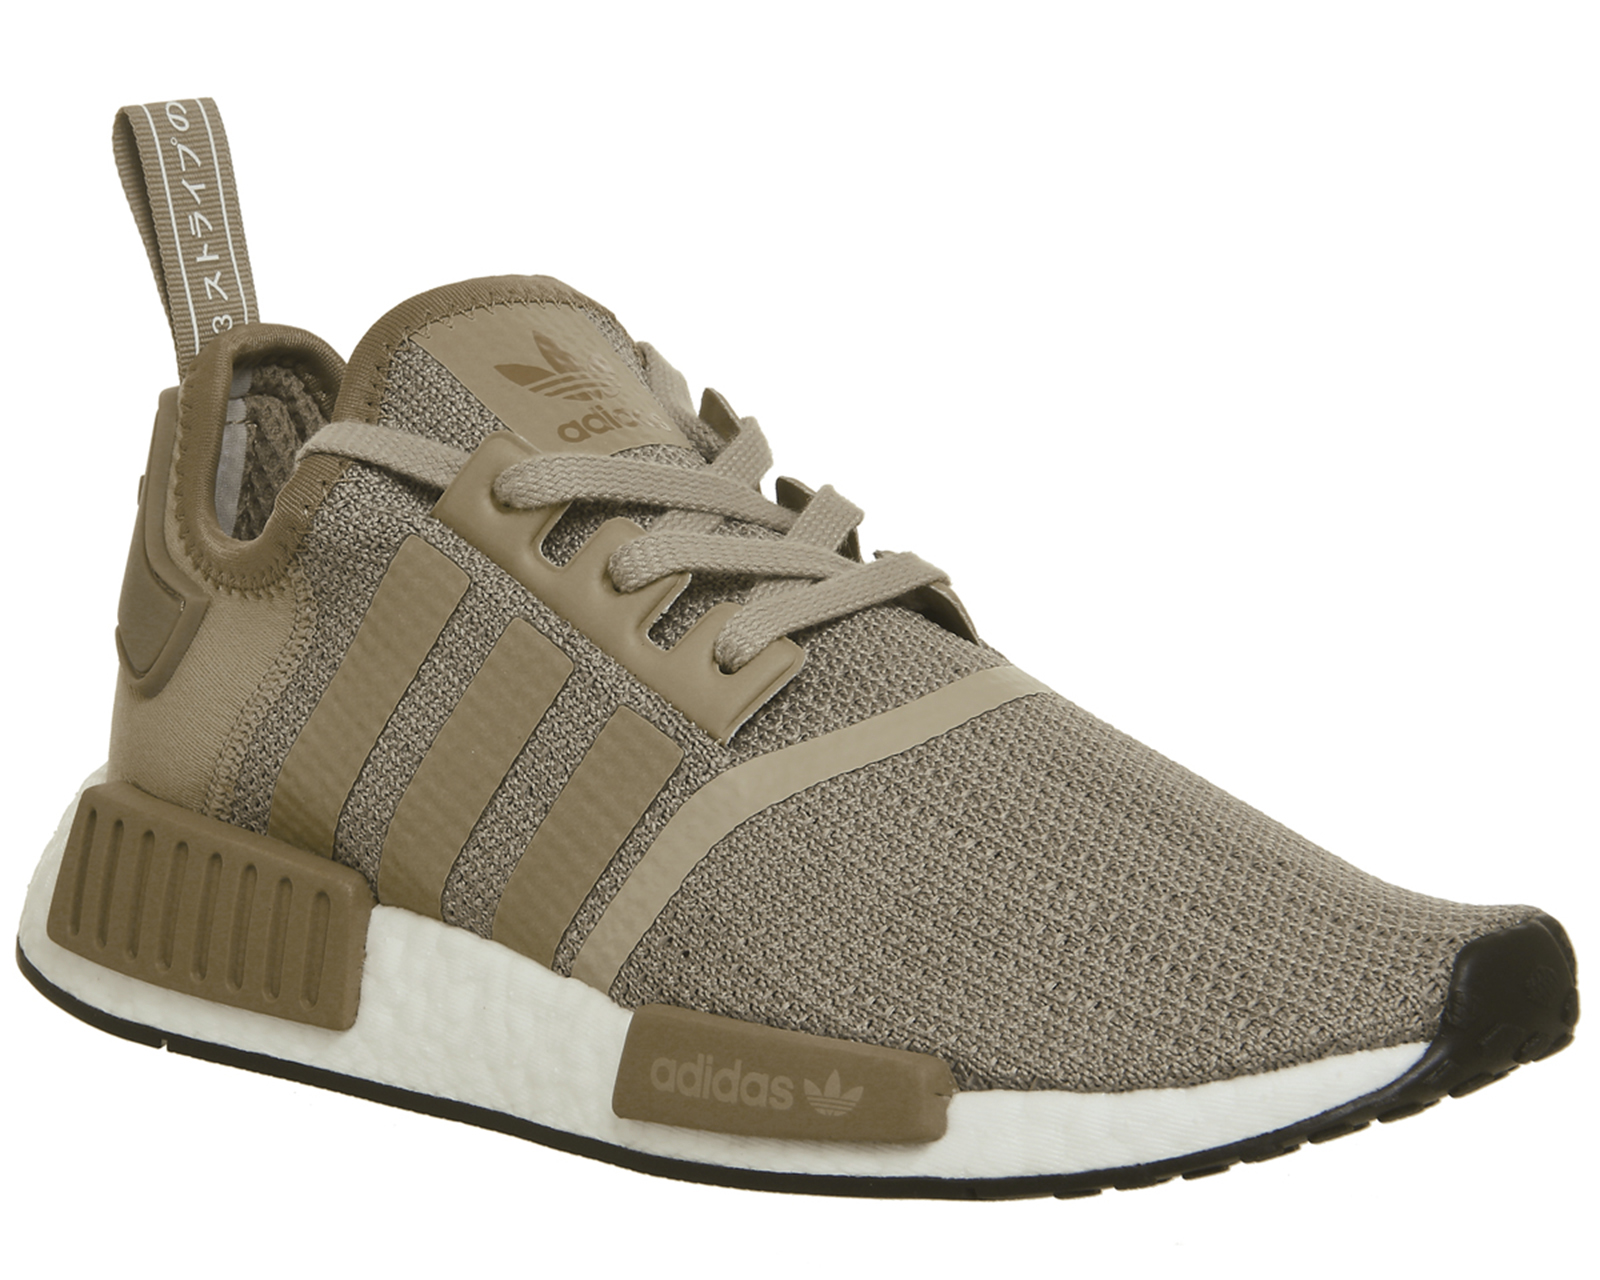 e0876fb0fb01 Sentinel Adidas Nmd R1 Trainers RAW GOLD CARDBOARD WHITE Trainers Shoes